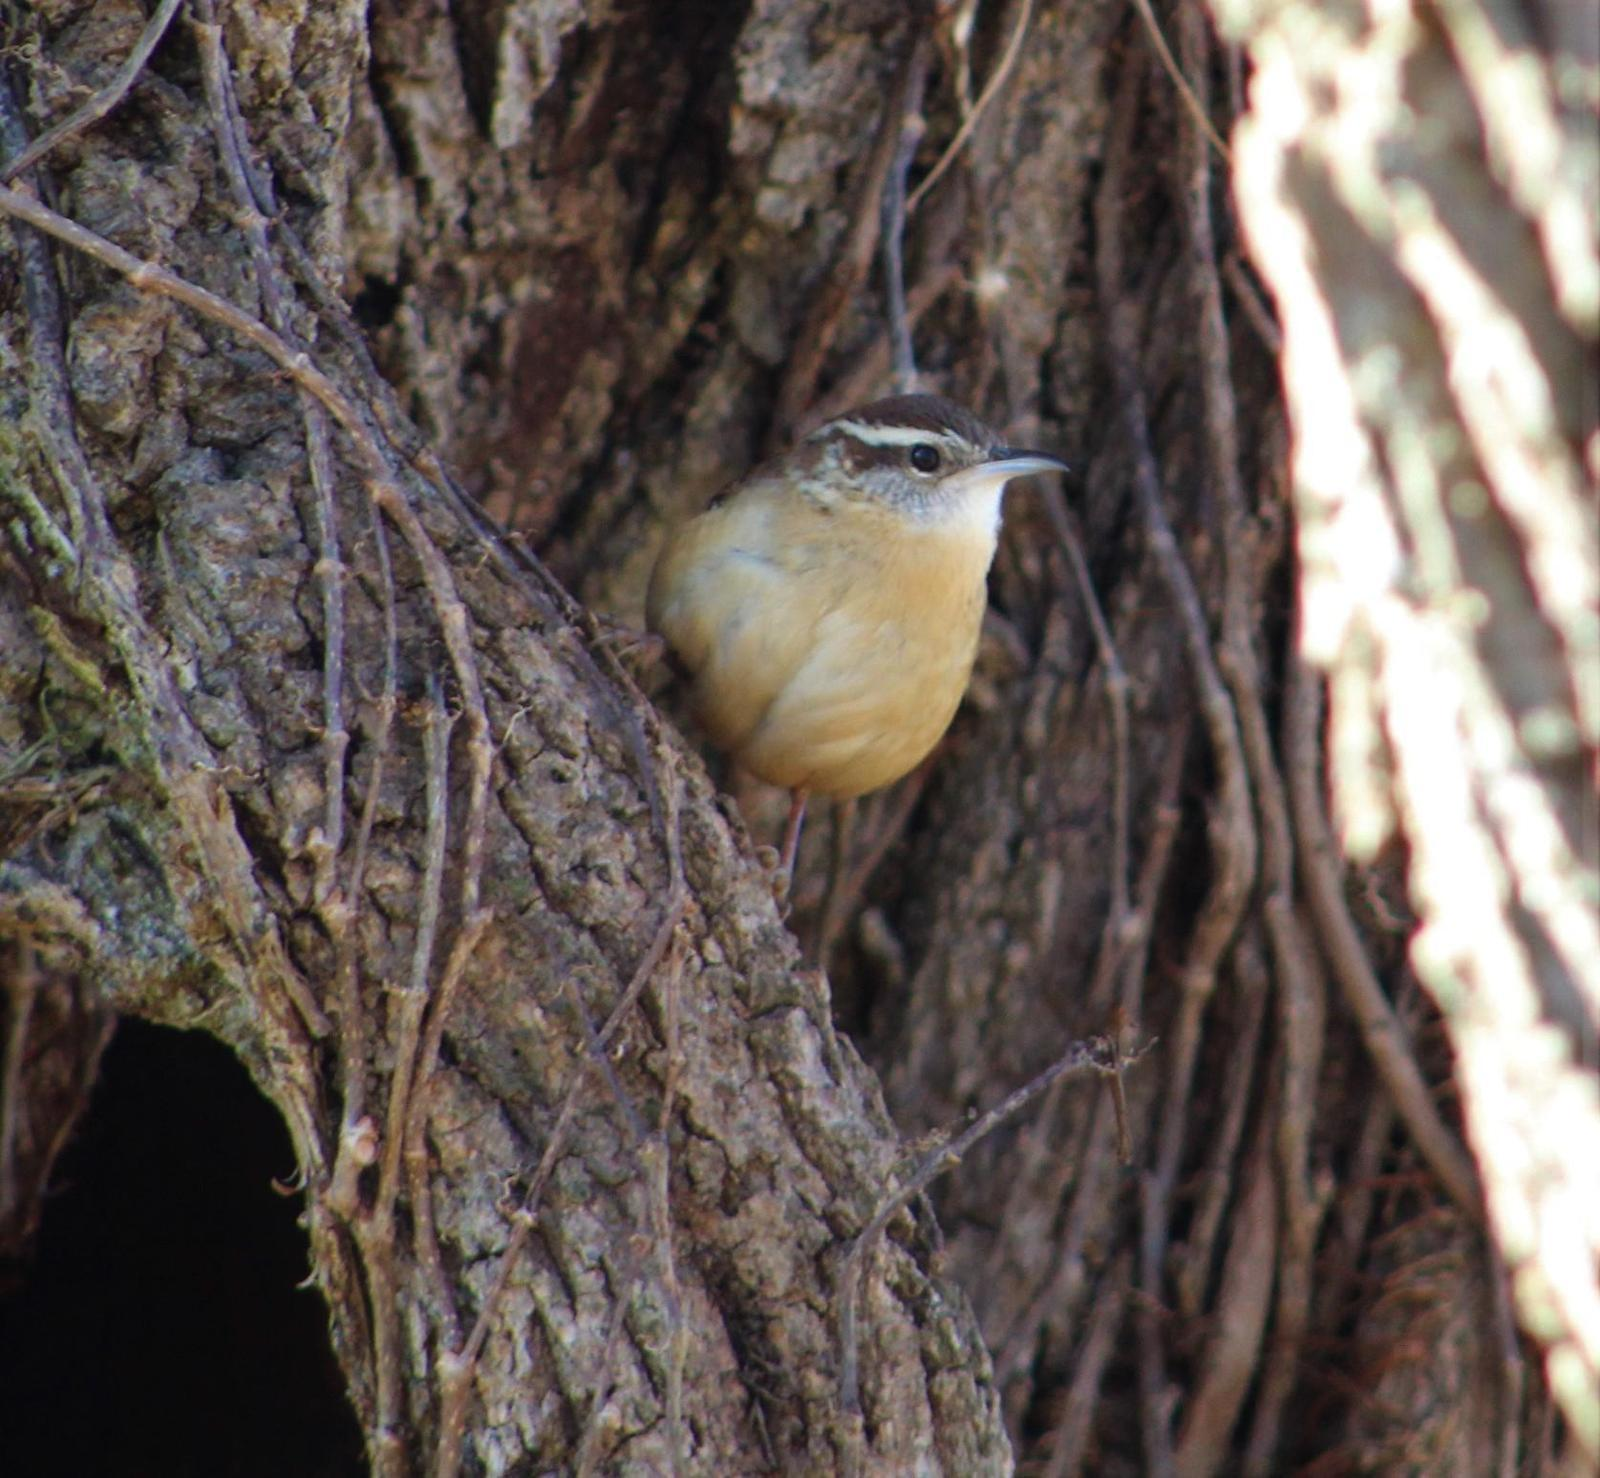 Carolina Wren Photo by Tony Heindel